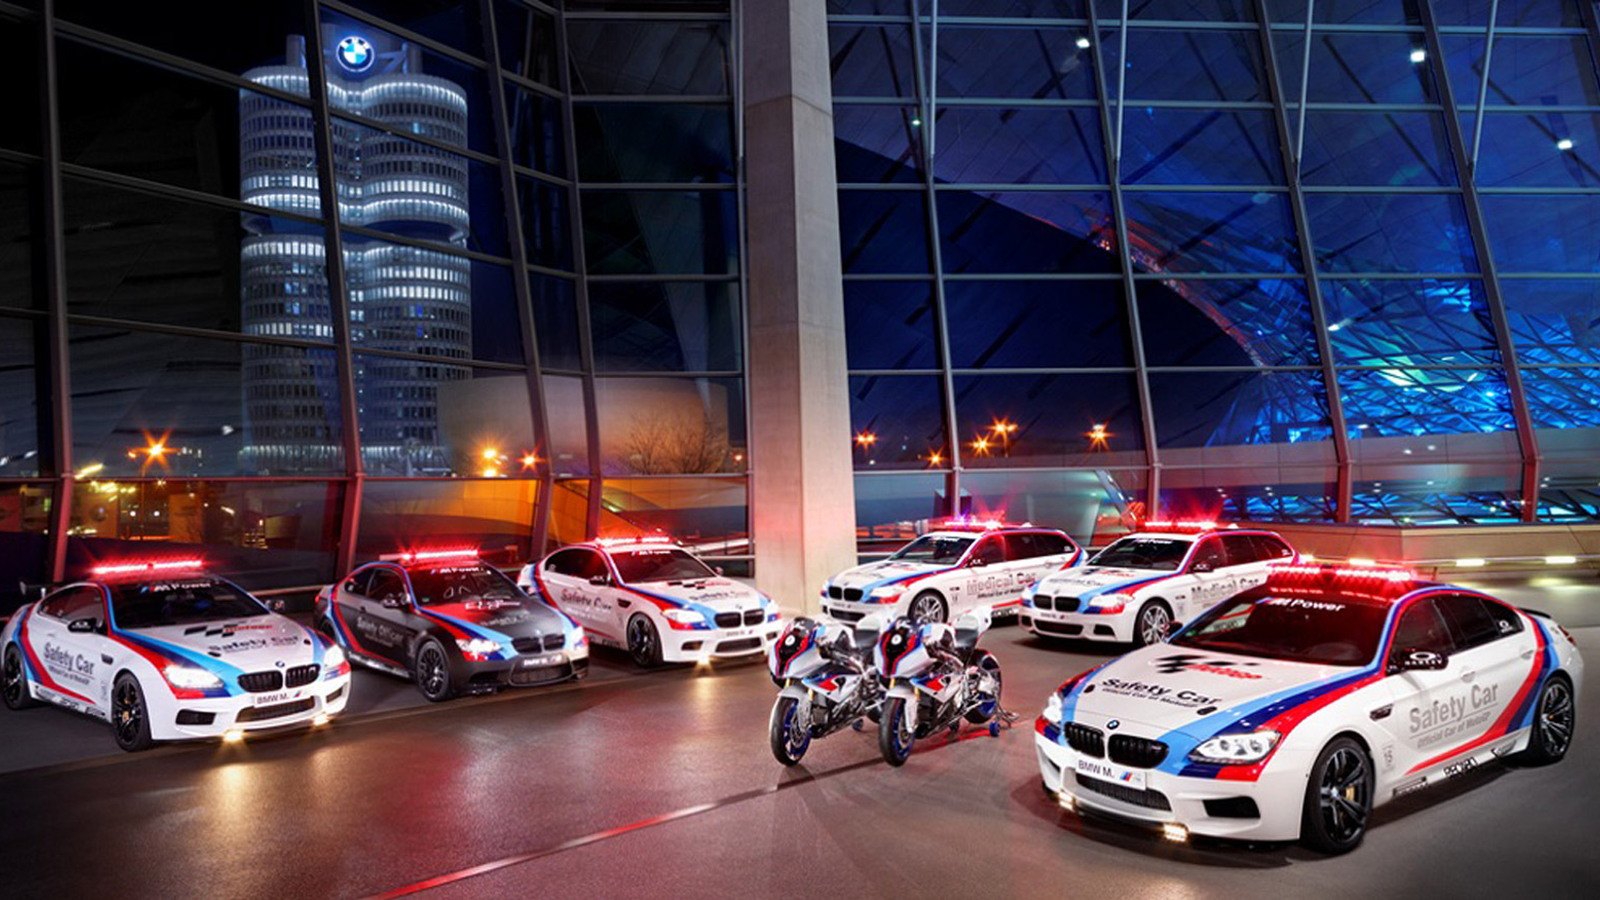 BMW's 2013 official safety vehicle fleet